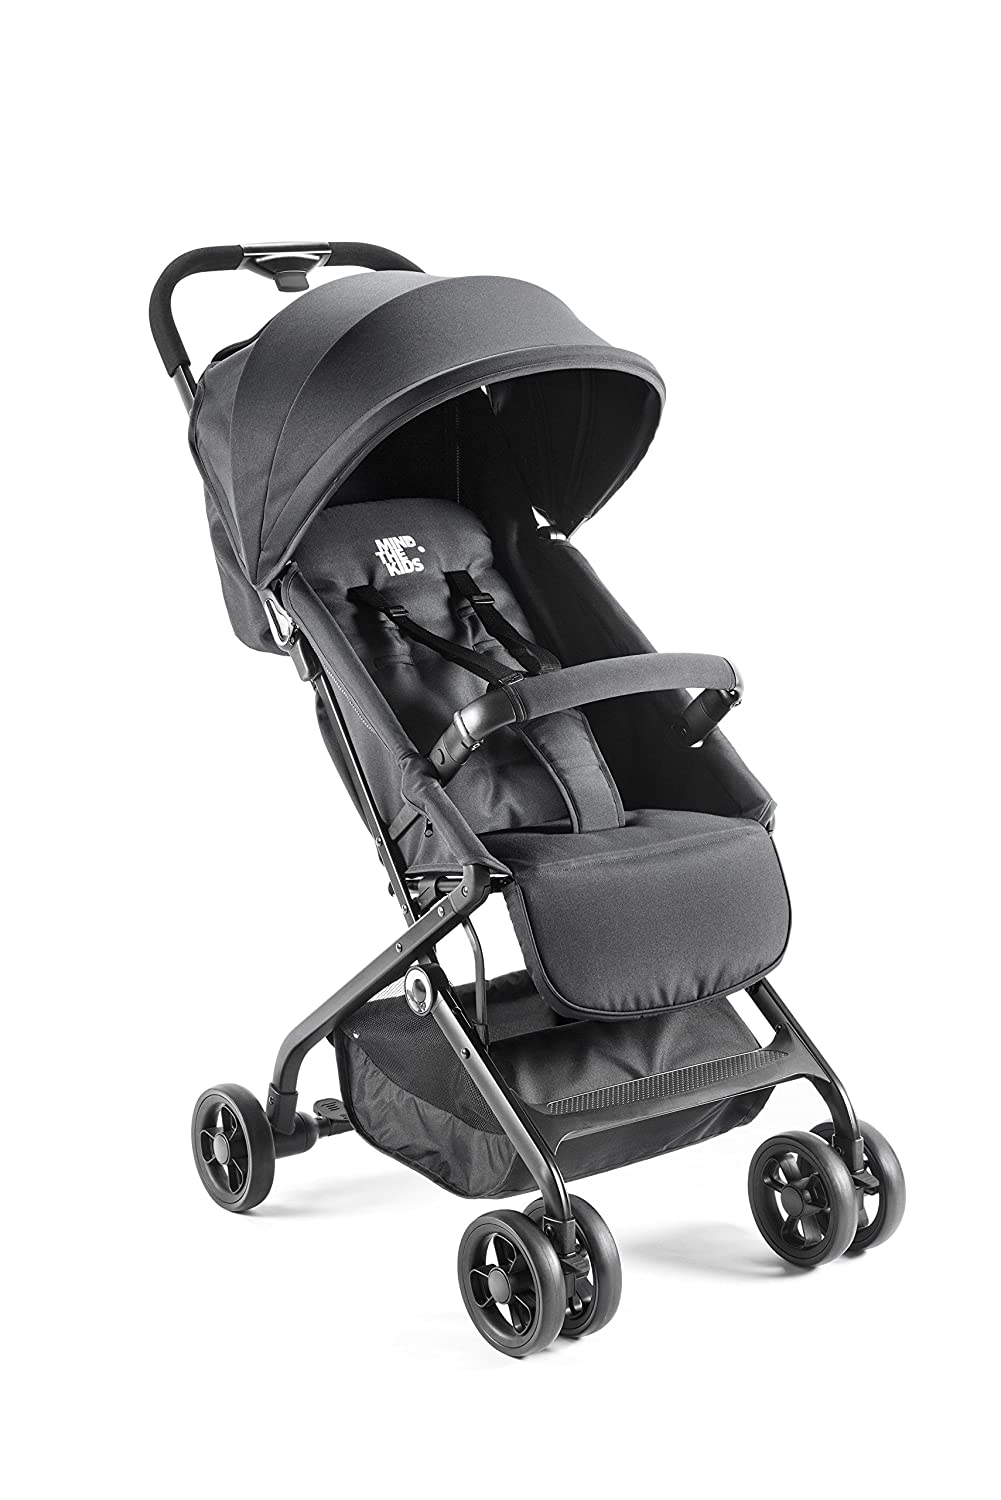 color negro Mind The Kids PST170101 Silla de paseo compacta y ultraligera